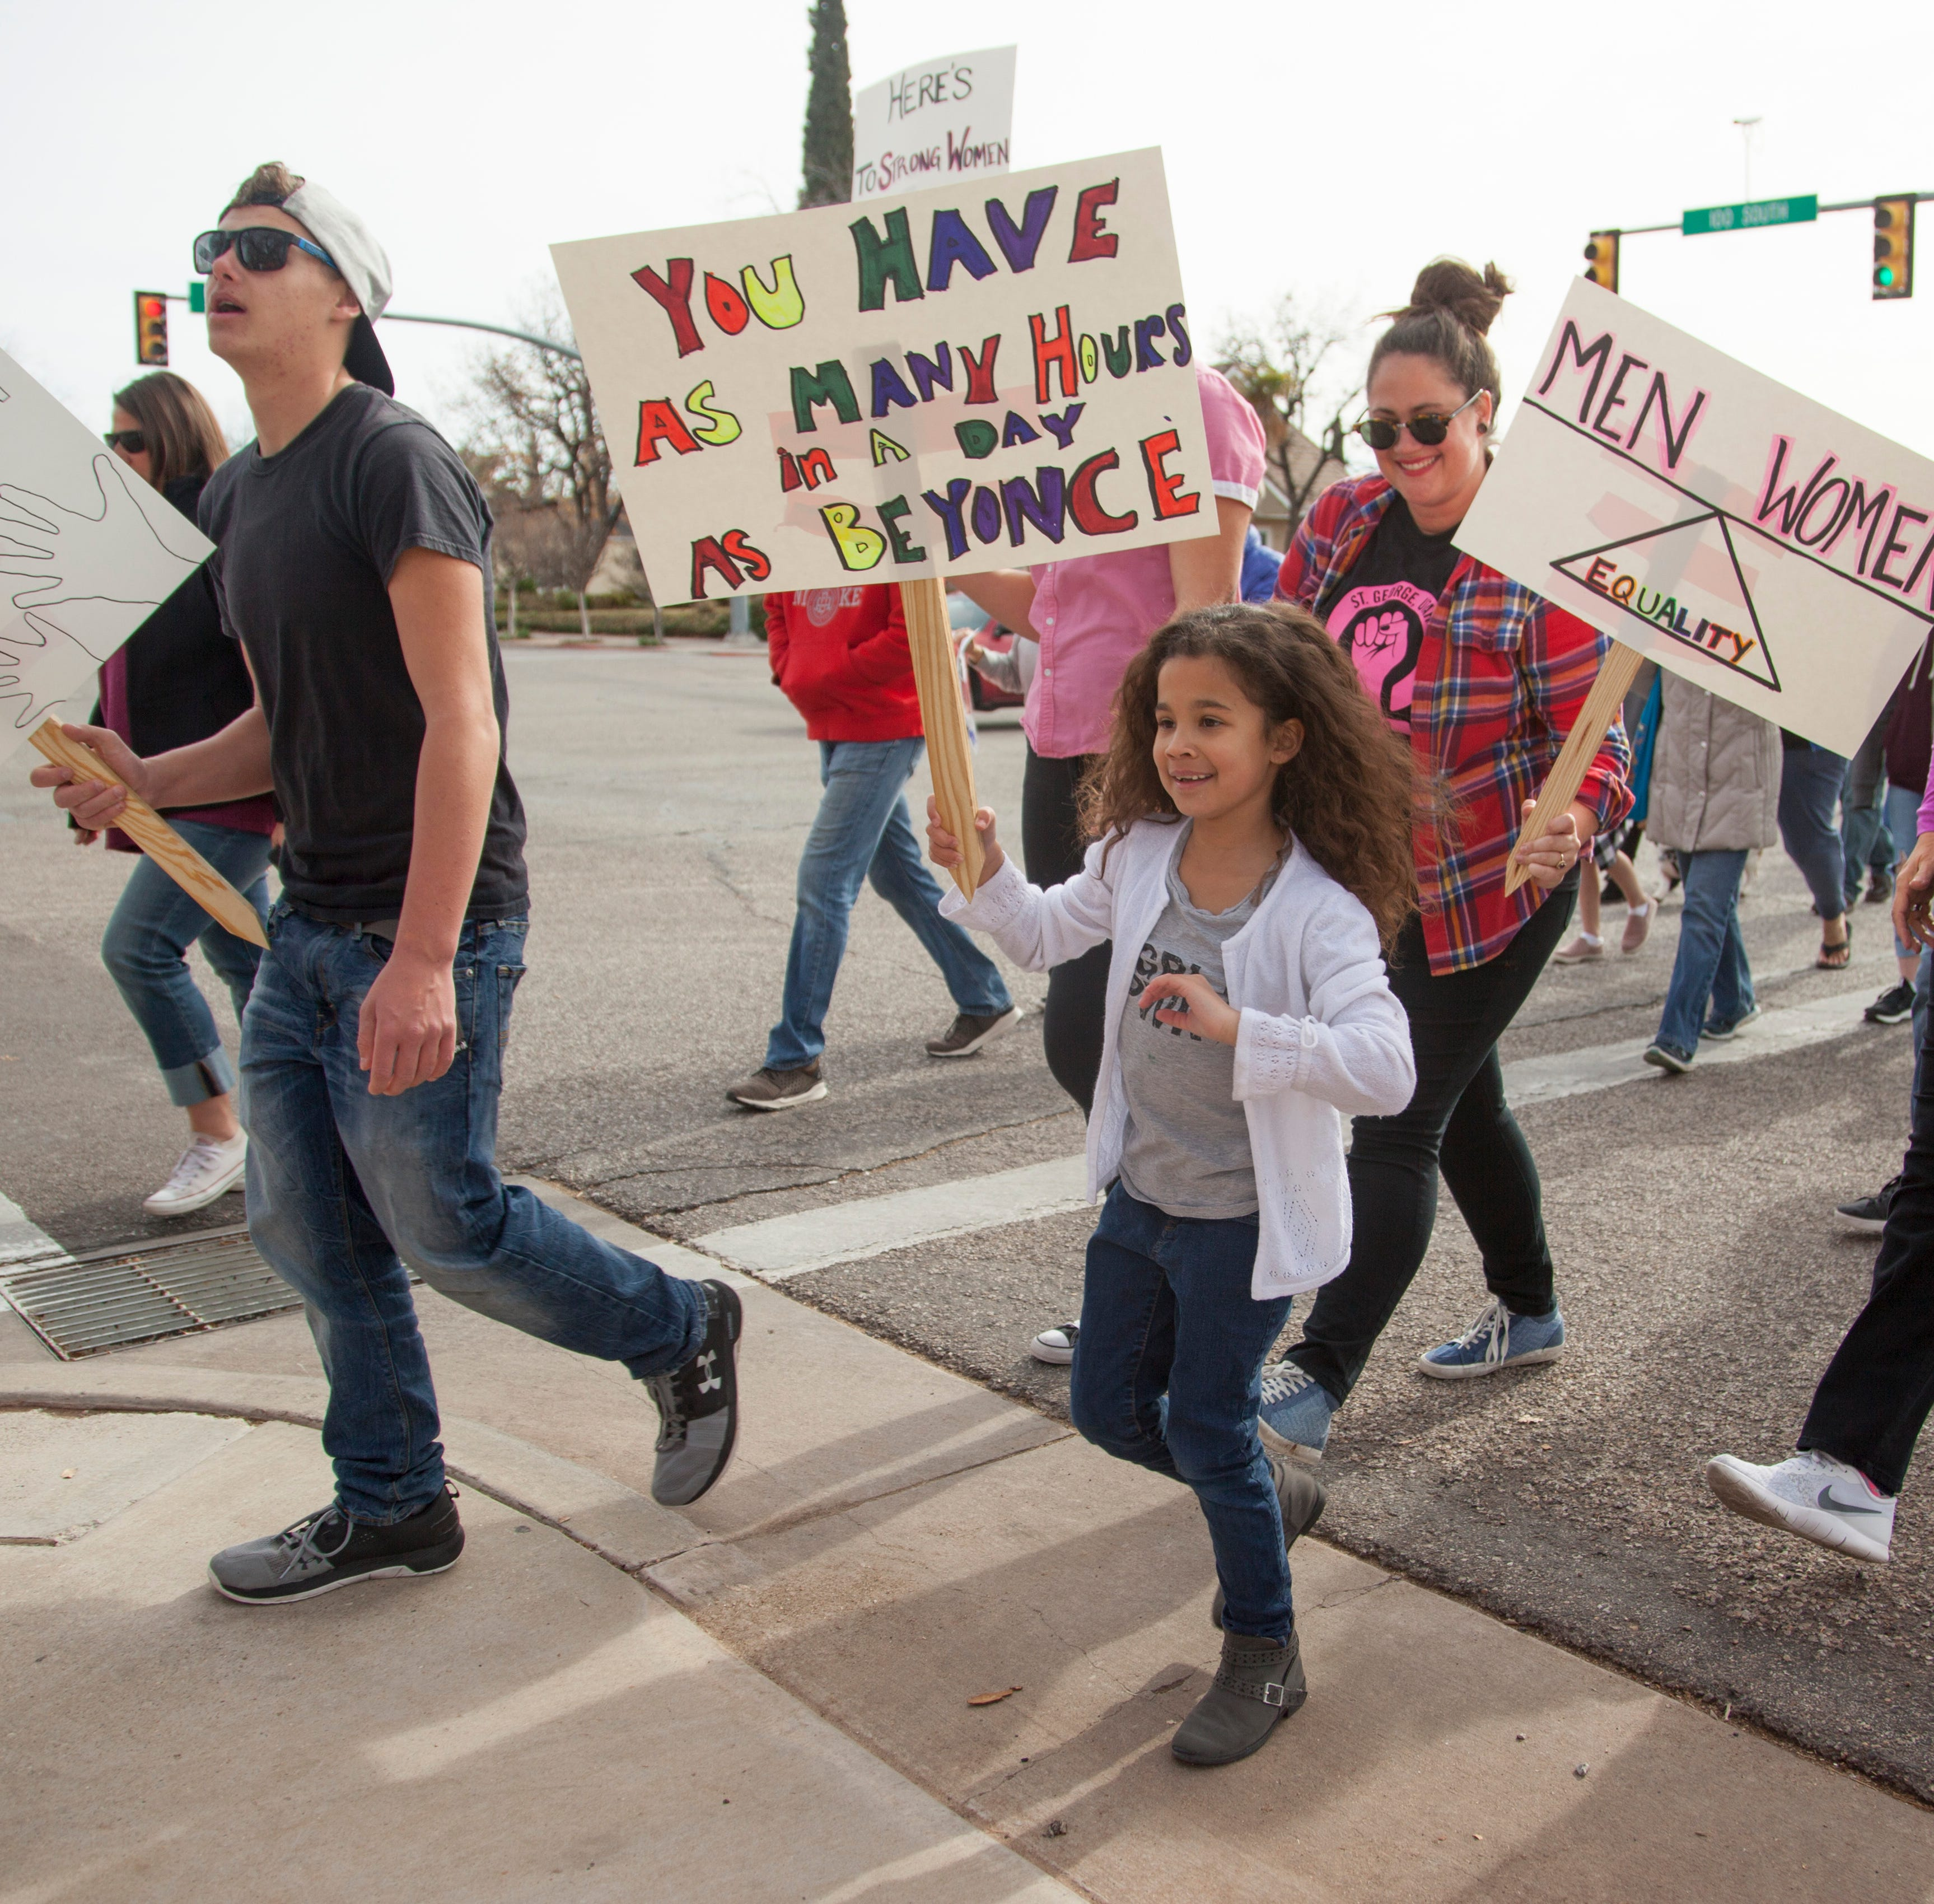 Women's March in Southern Utah: Community gathers to support women's rights